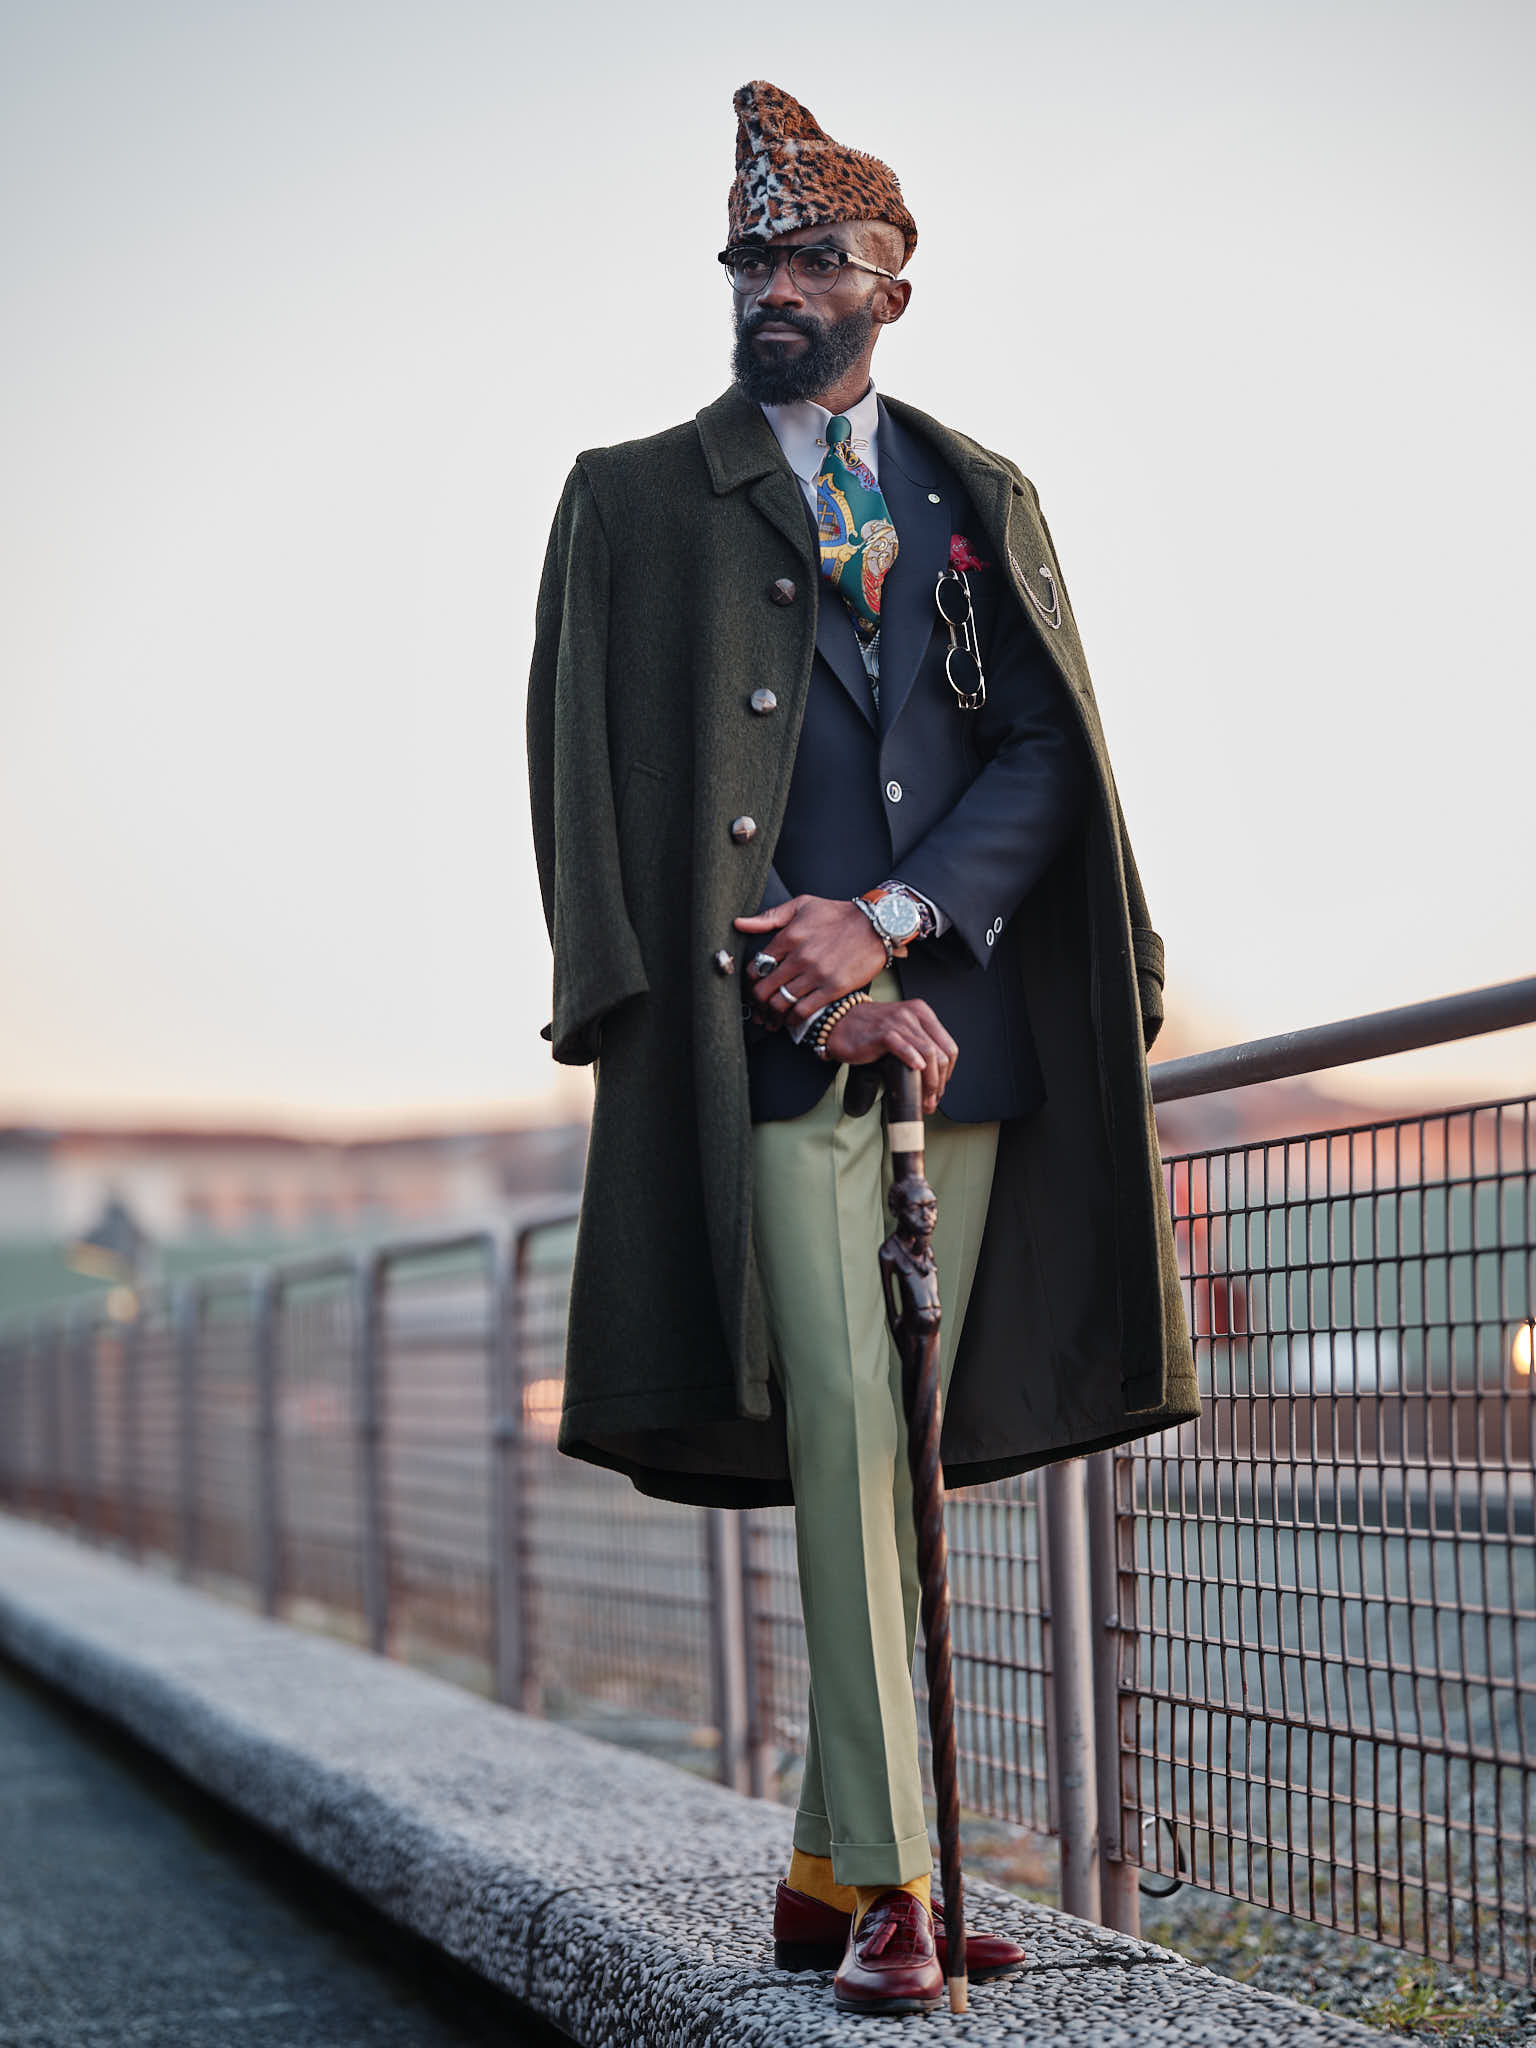 The photos from the 97th edition of Pitti Immagine Uomo fair in Florence